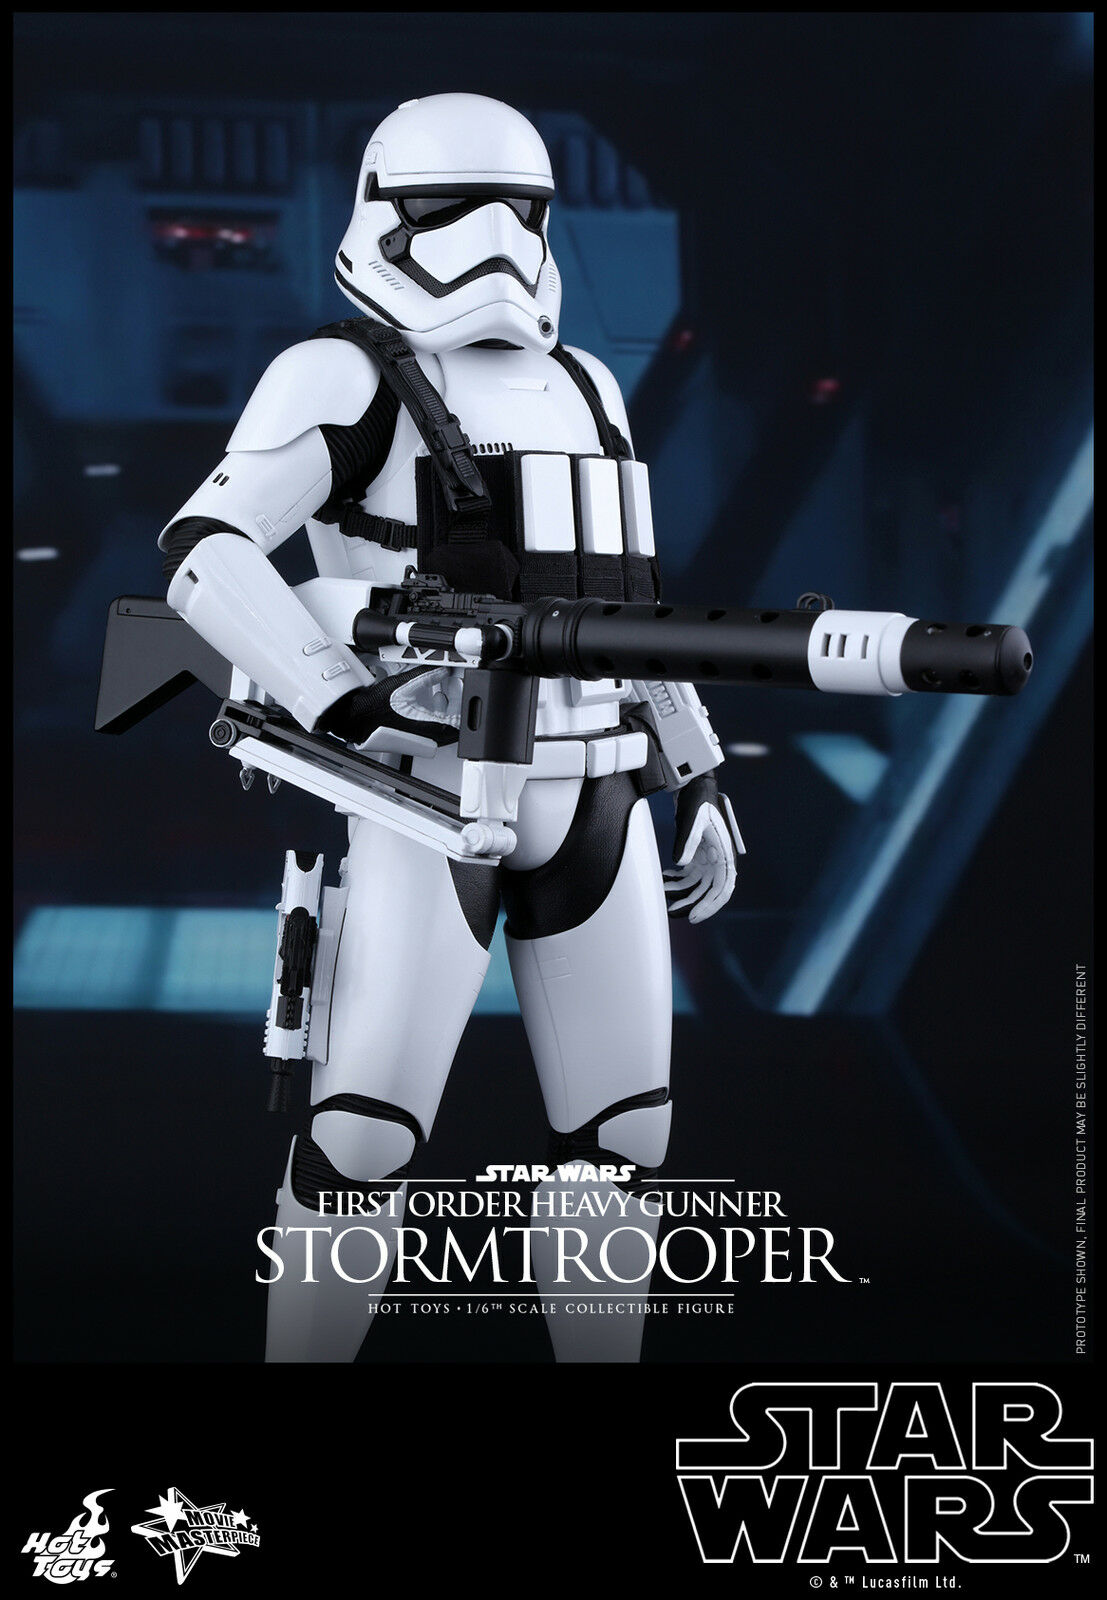 Star Wars The Force Awakens  First First First Order Heavy Gunner Stormtrooper 1 6 HOT TOYS  la mejor selección de